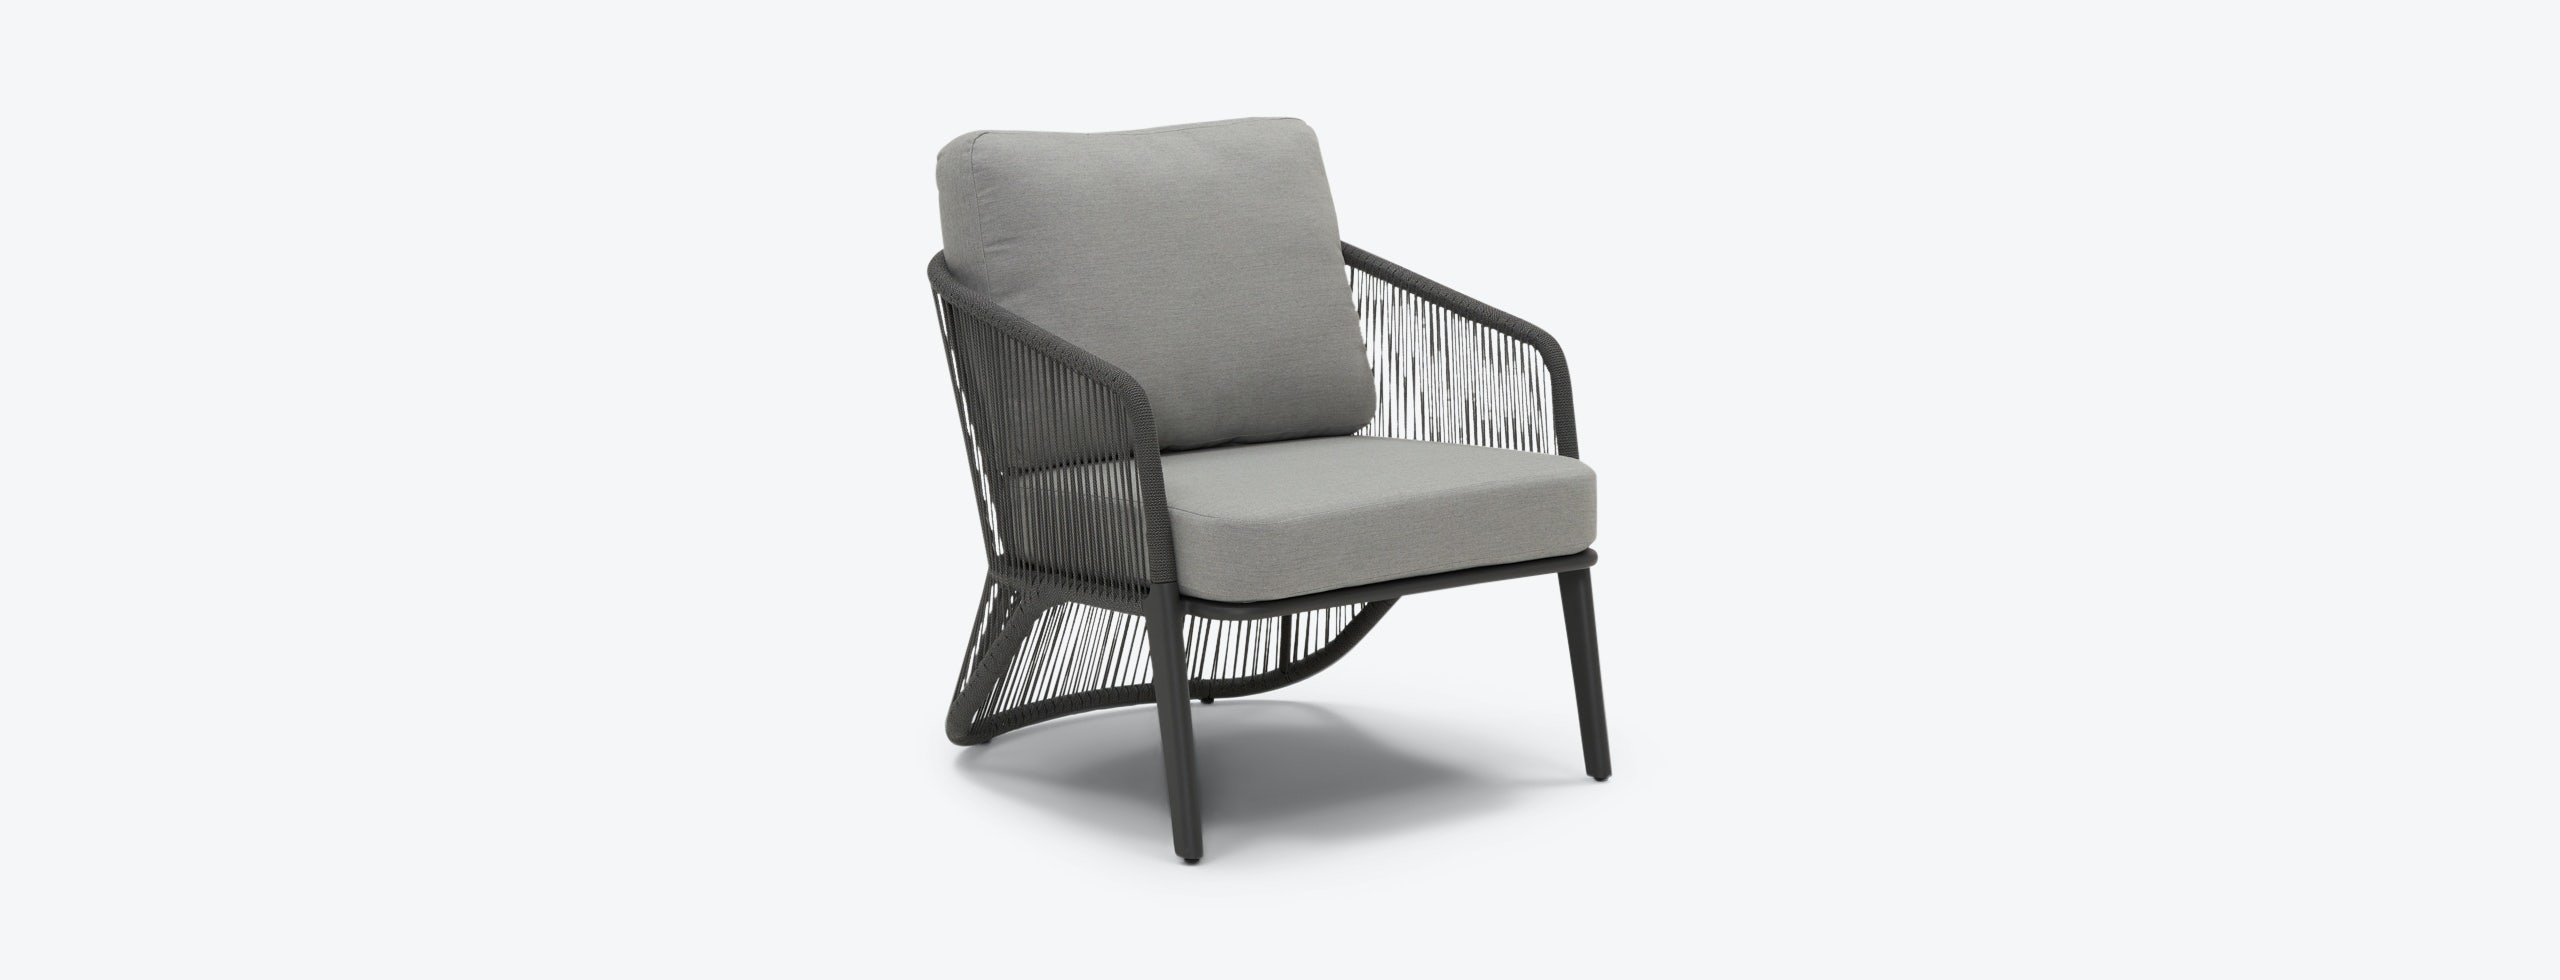 Venice Outdoor Chair